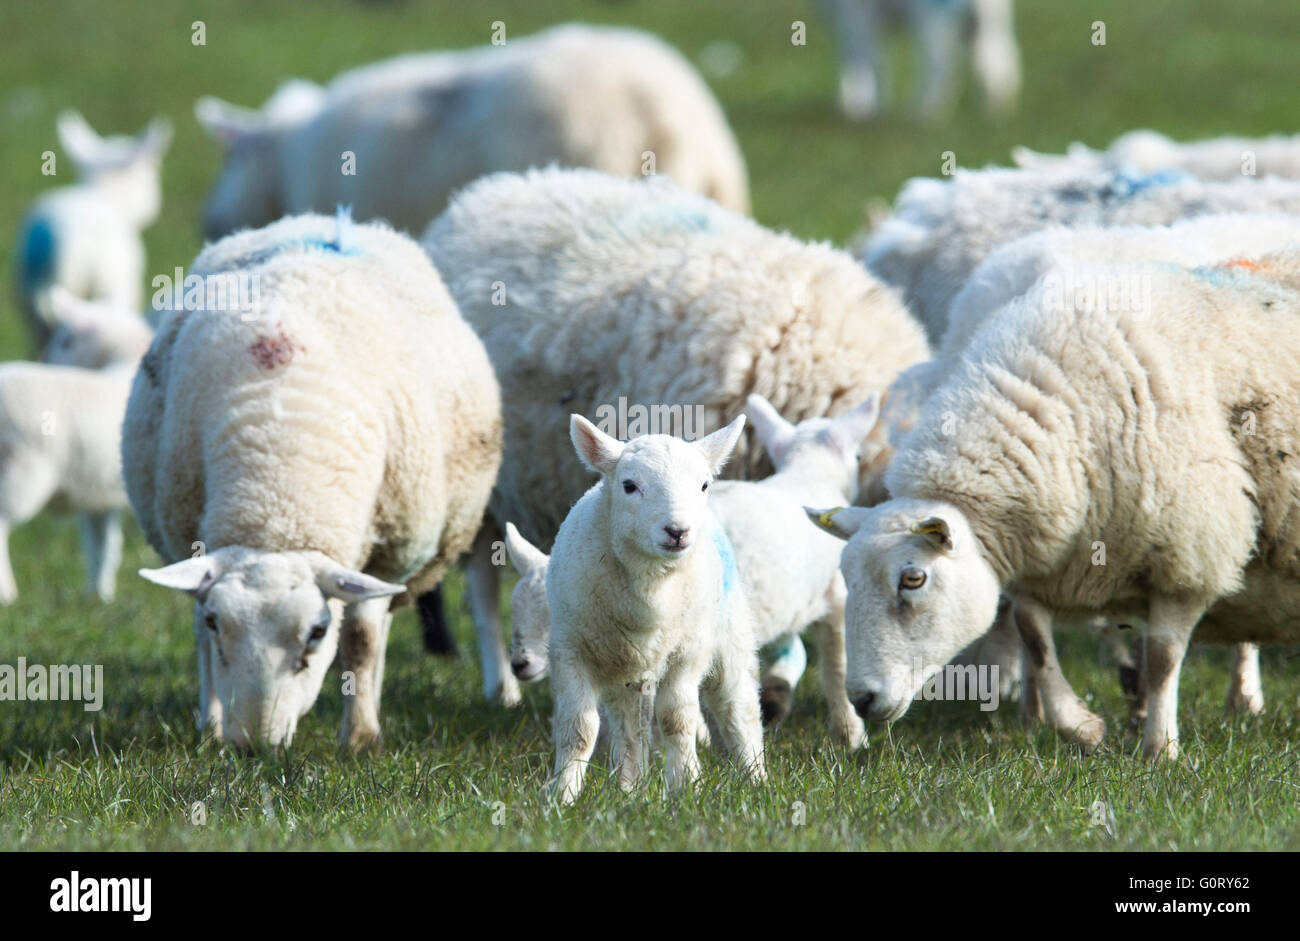 27/04/2016, Ewes and lambs grazing in a field at Kirkhill farm, Caithness, Scotland. - Stock Image